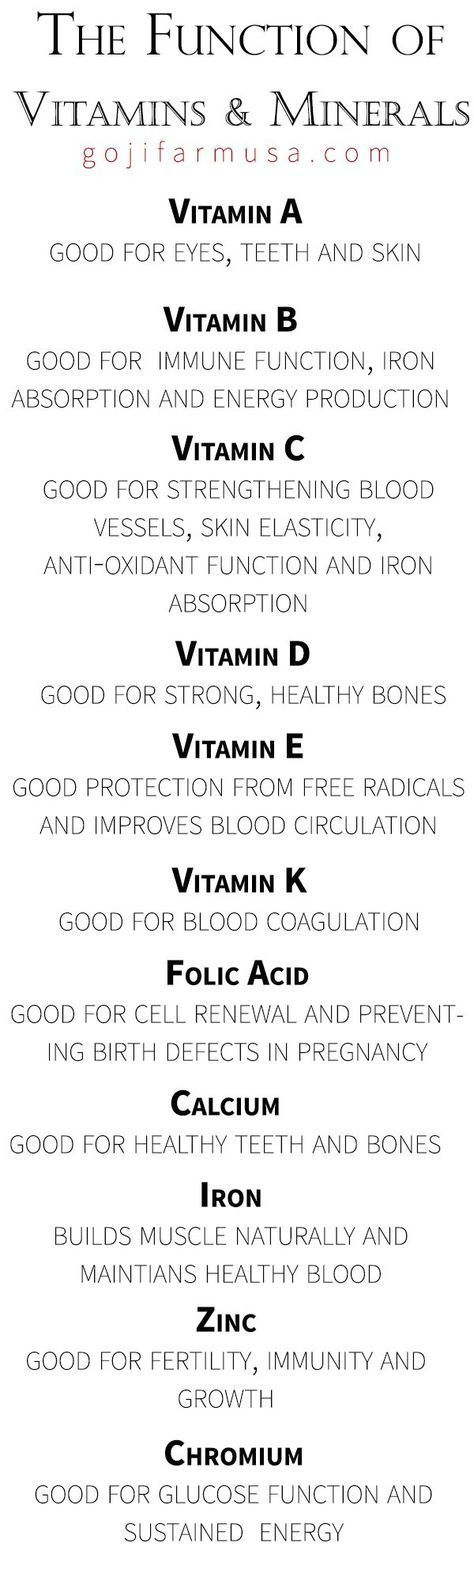 Vitamins and minerals play an important role in the body functioning properly - and in helping to ward off illness and inflammation. Knowing your levels also helps you determine if you've got a deficiency that needs to be addressed. This is especially important for chronic pain sufferers! Keep this chart handy.